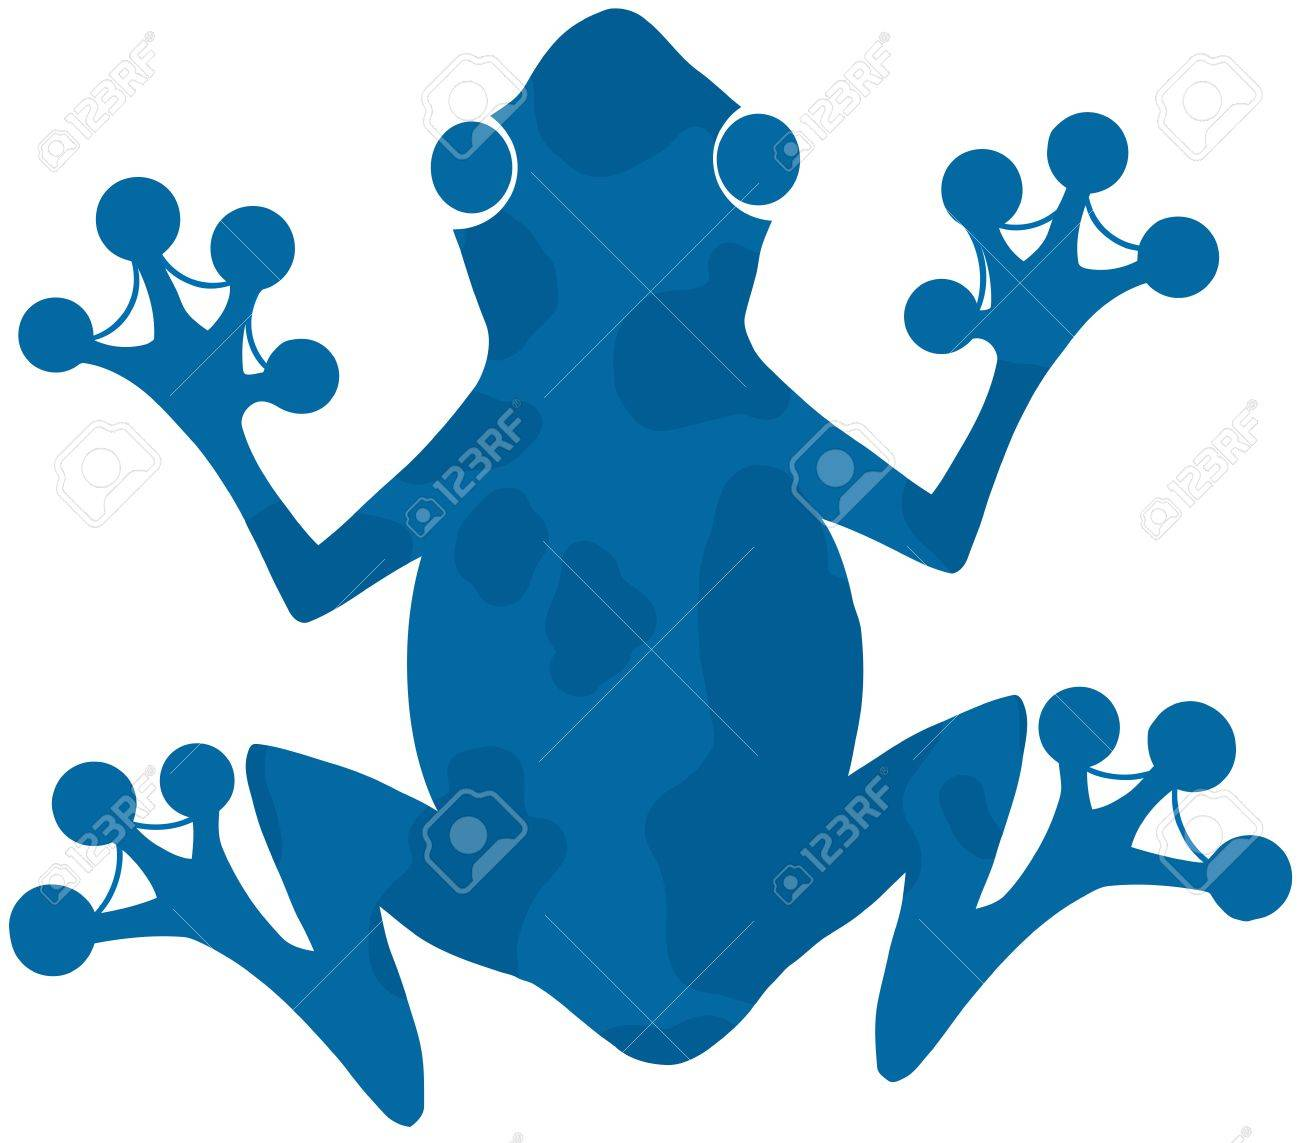 Blue Spotted Frog Silhouette Logo Stock Vector - 19986677